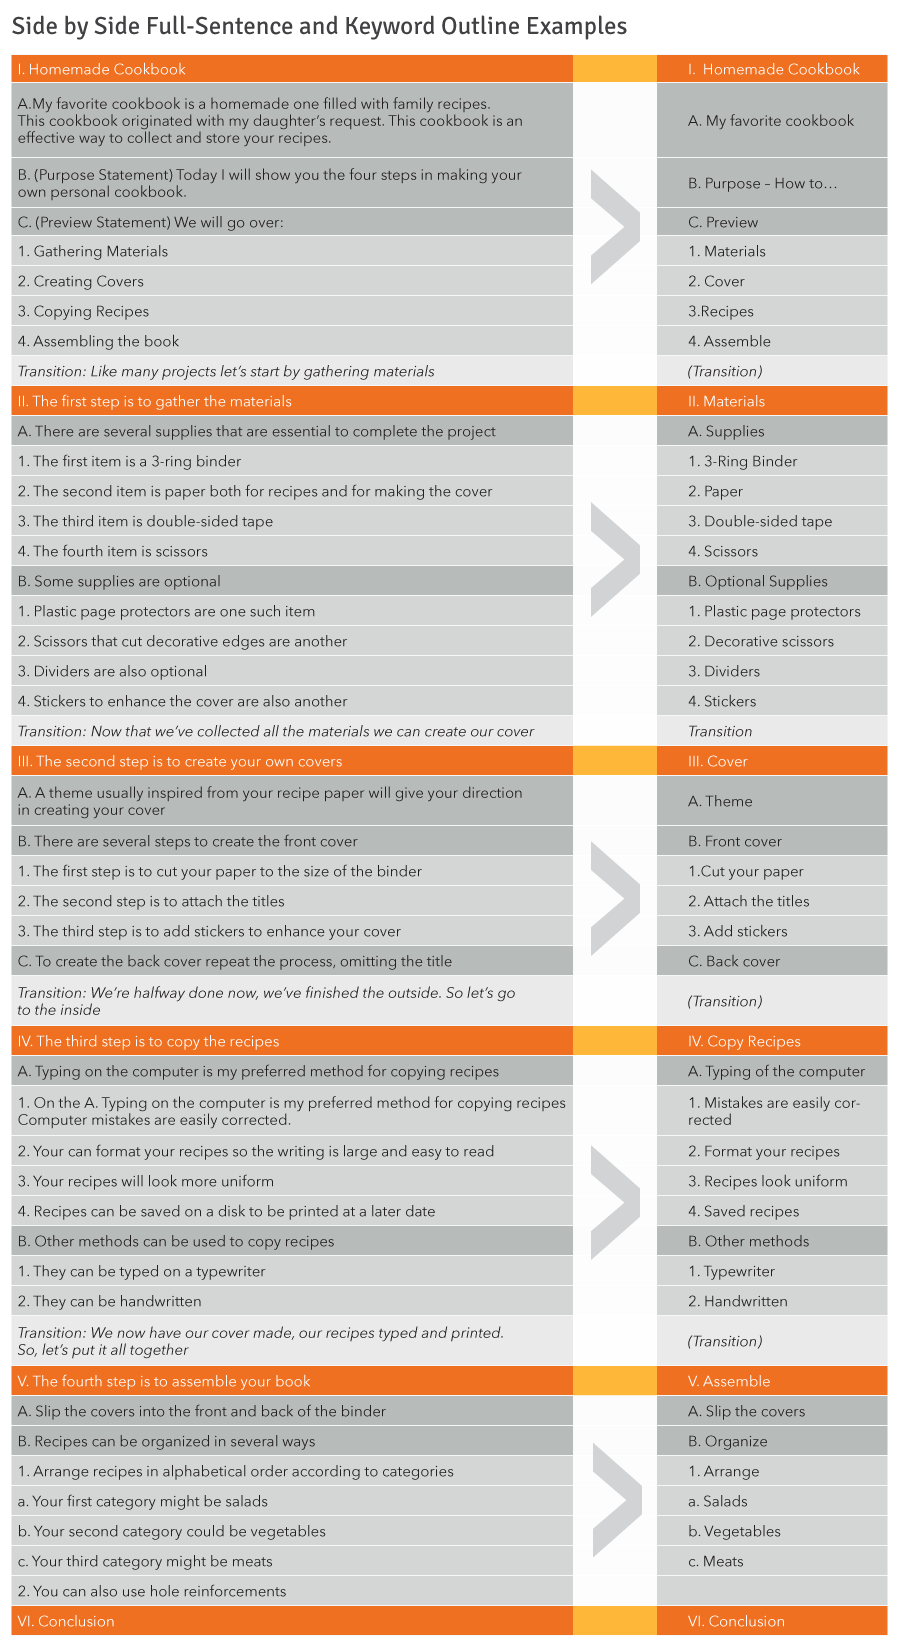 Side by Side Full-Sentence and Keyword Outline Examples, explained in paragraph below.